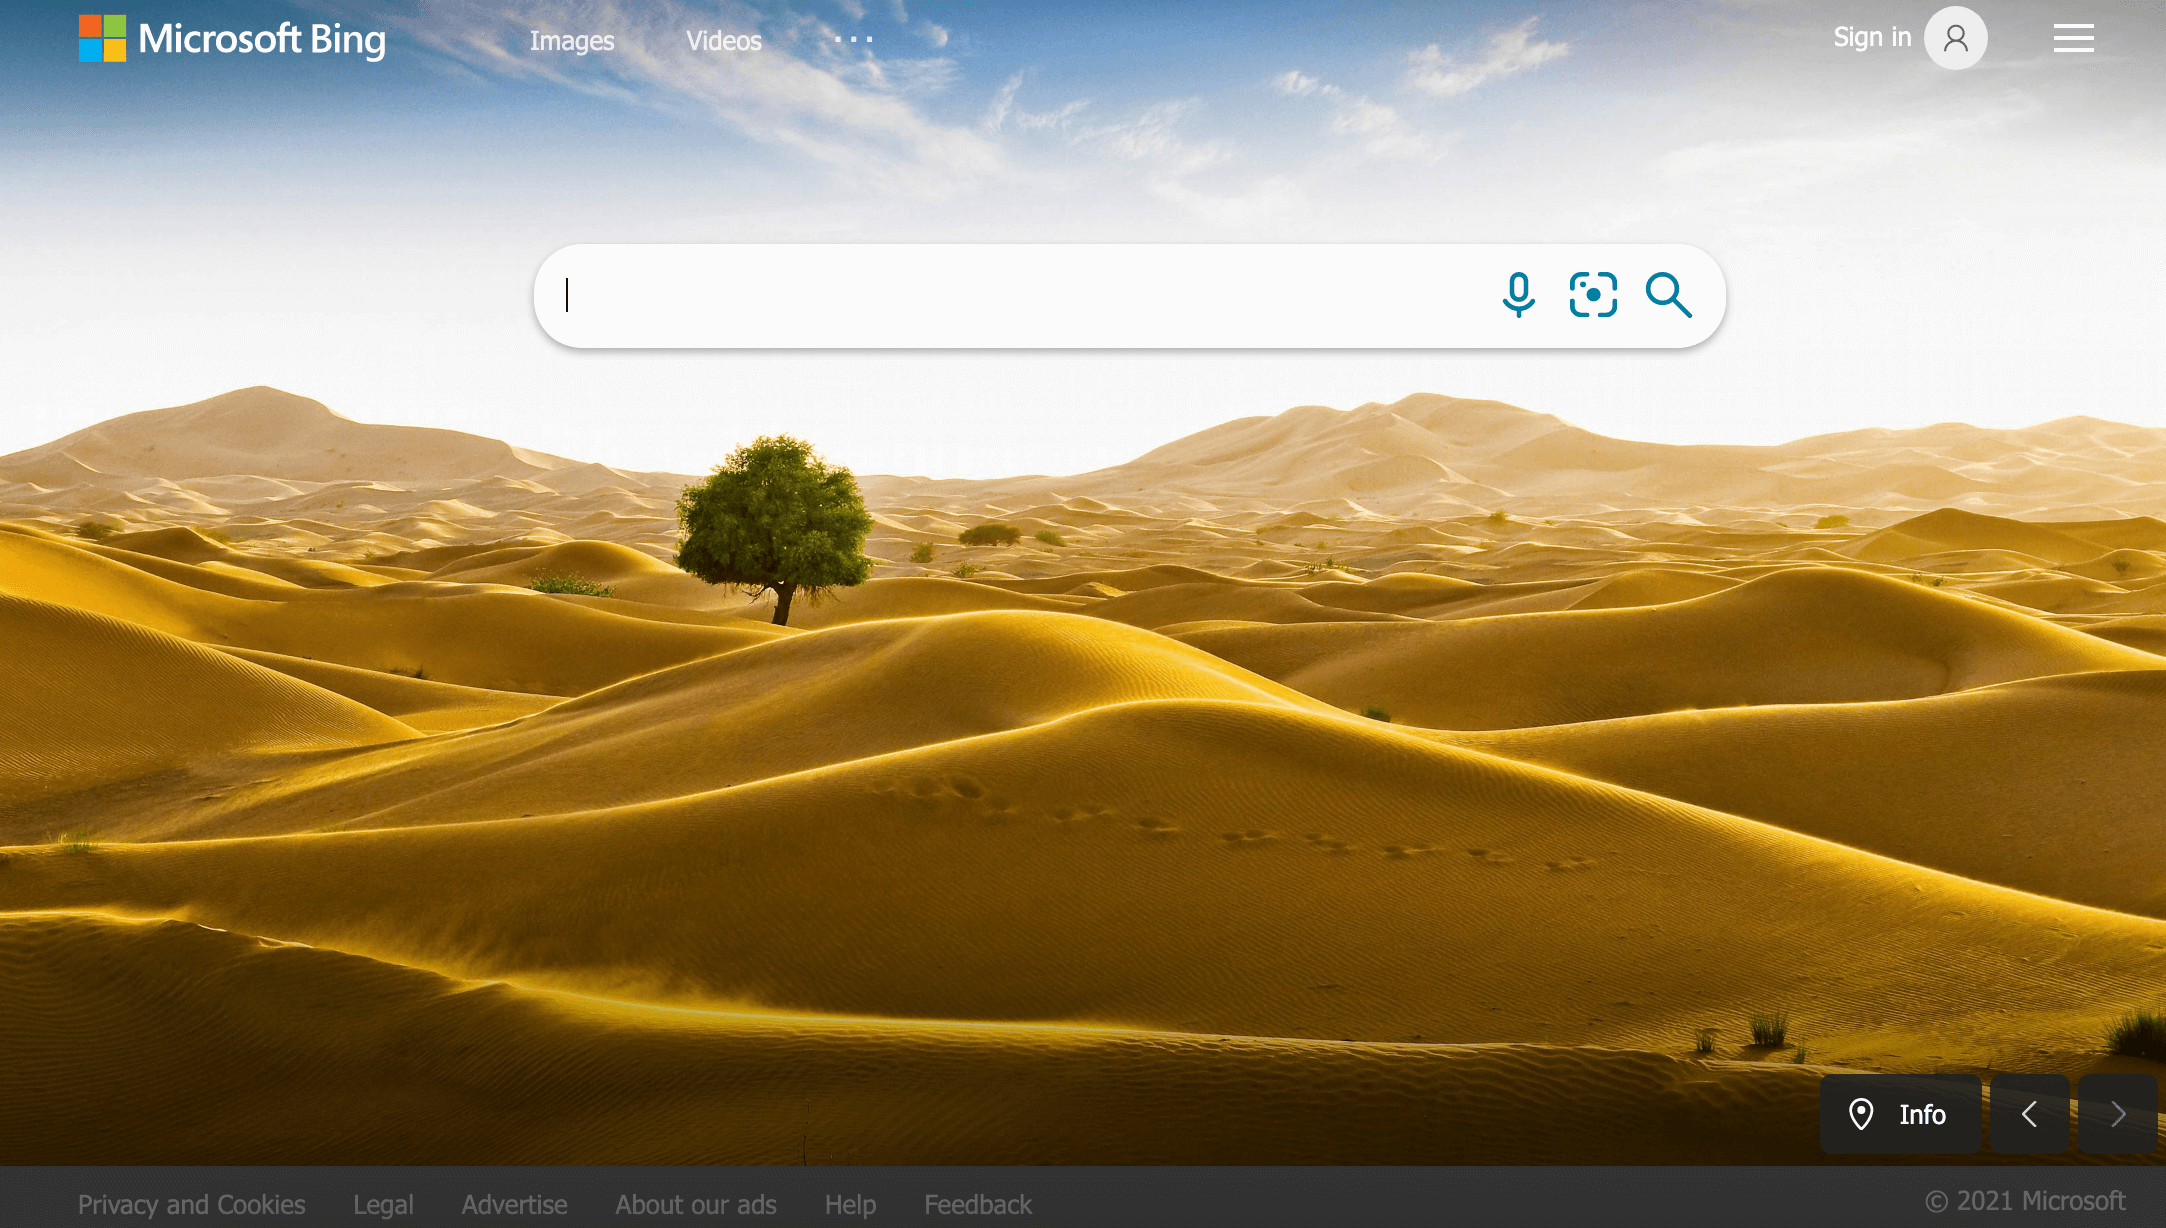 Finding personal information about someone with Bing